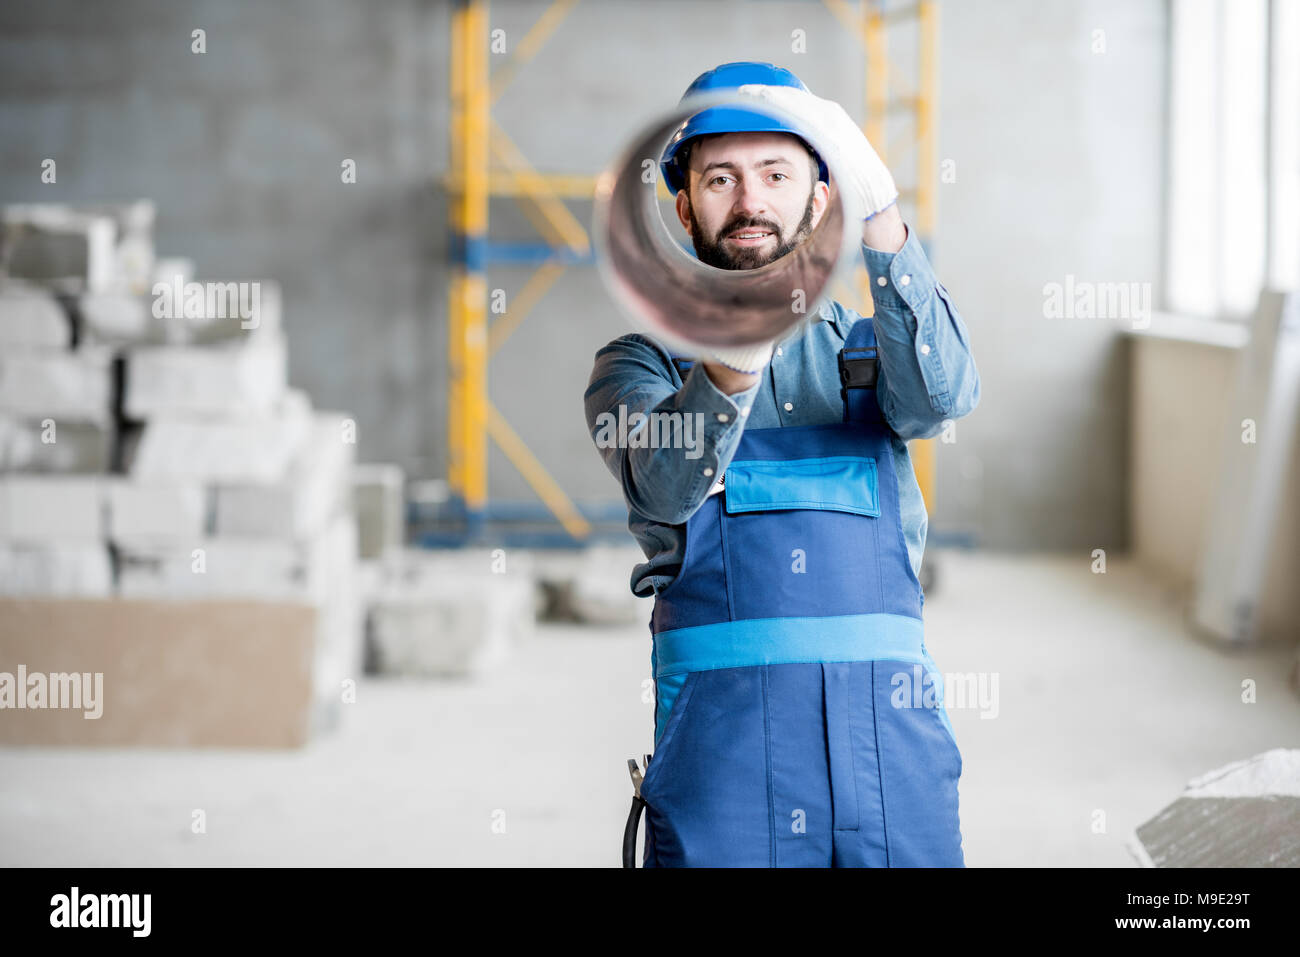 Builder with ventilation pipe - Stock Image